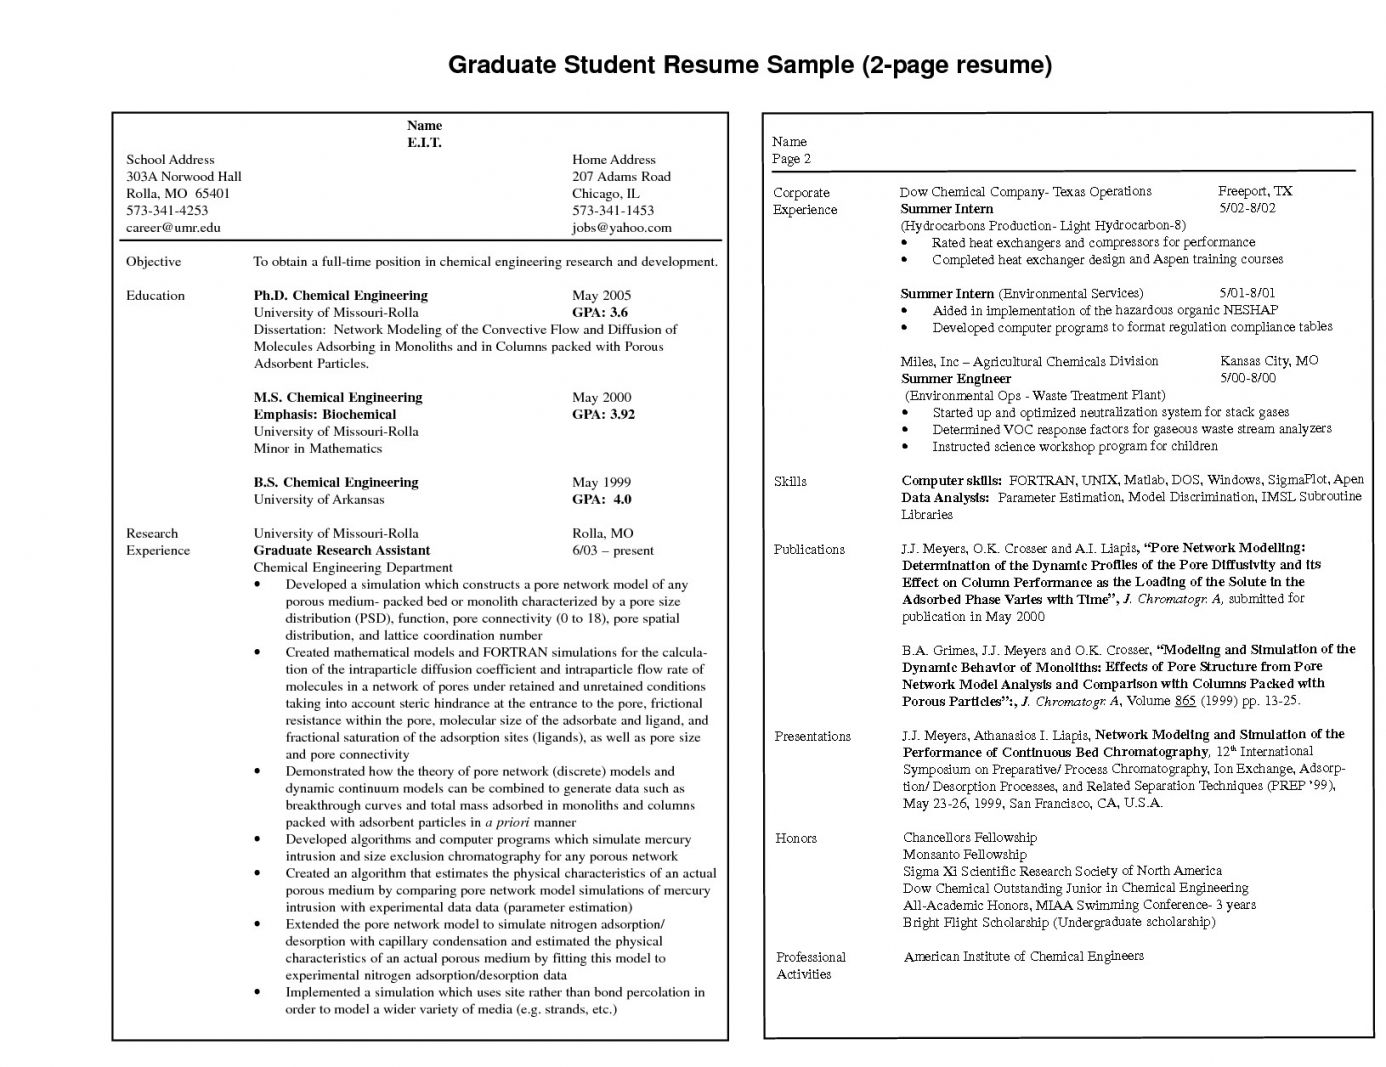 resume examples in good template downloadable format optimization software restaurant Resume 2 Page Resume Format